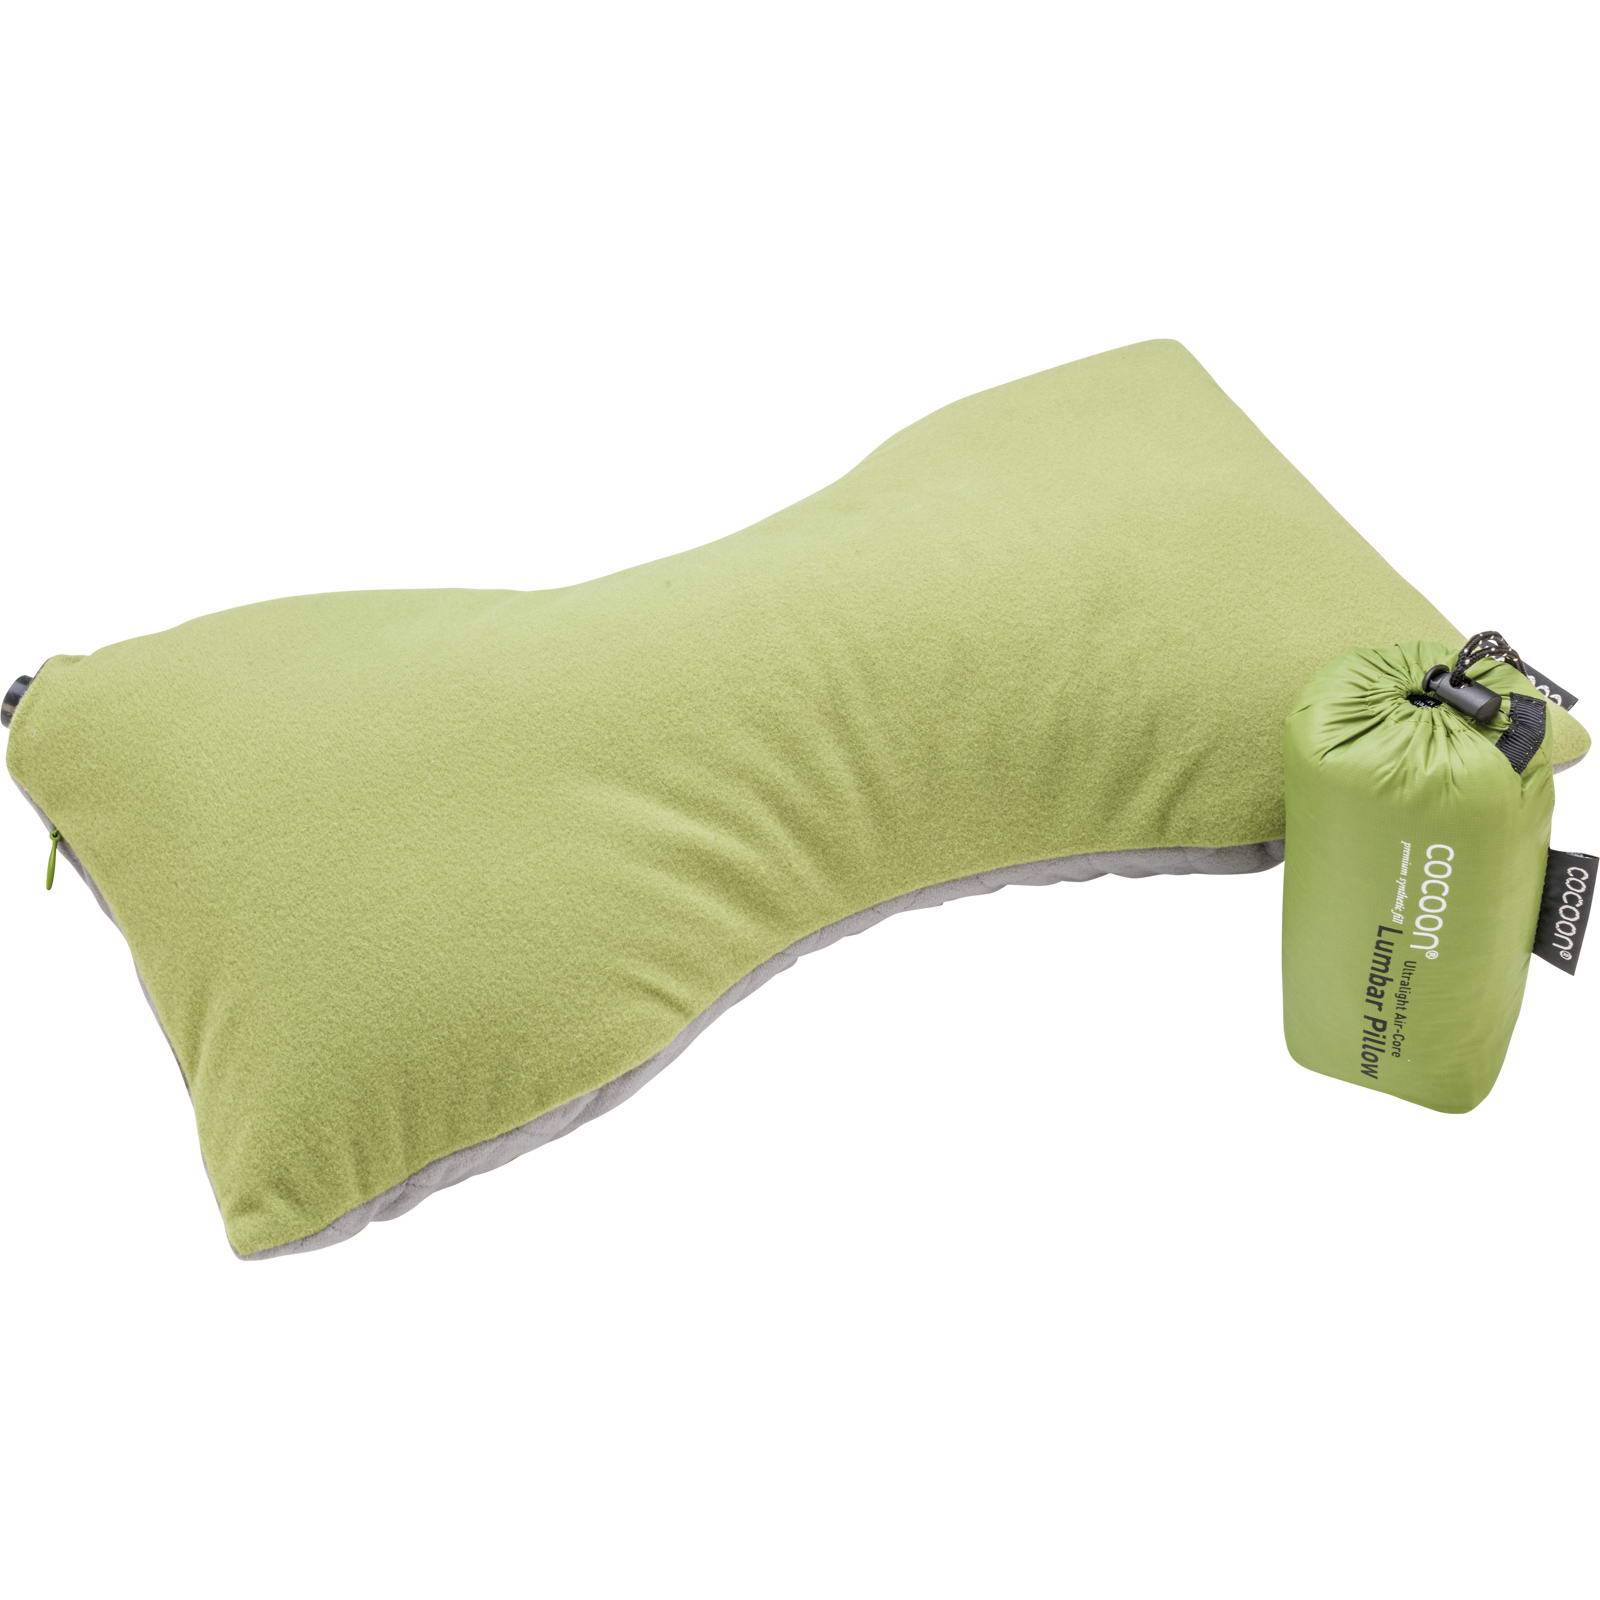 COCOON Air-Core Pillow Lumbar Support - Lendenwirbelkissen wasabi-grey - Bild 3